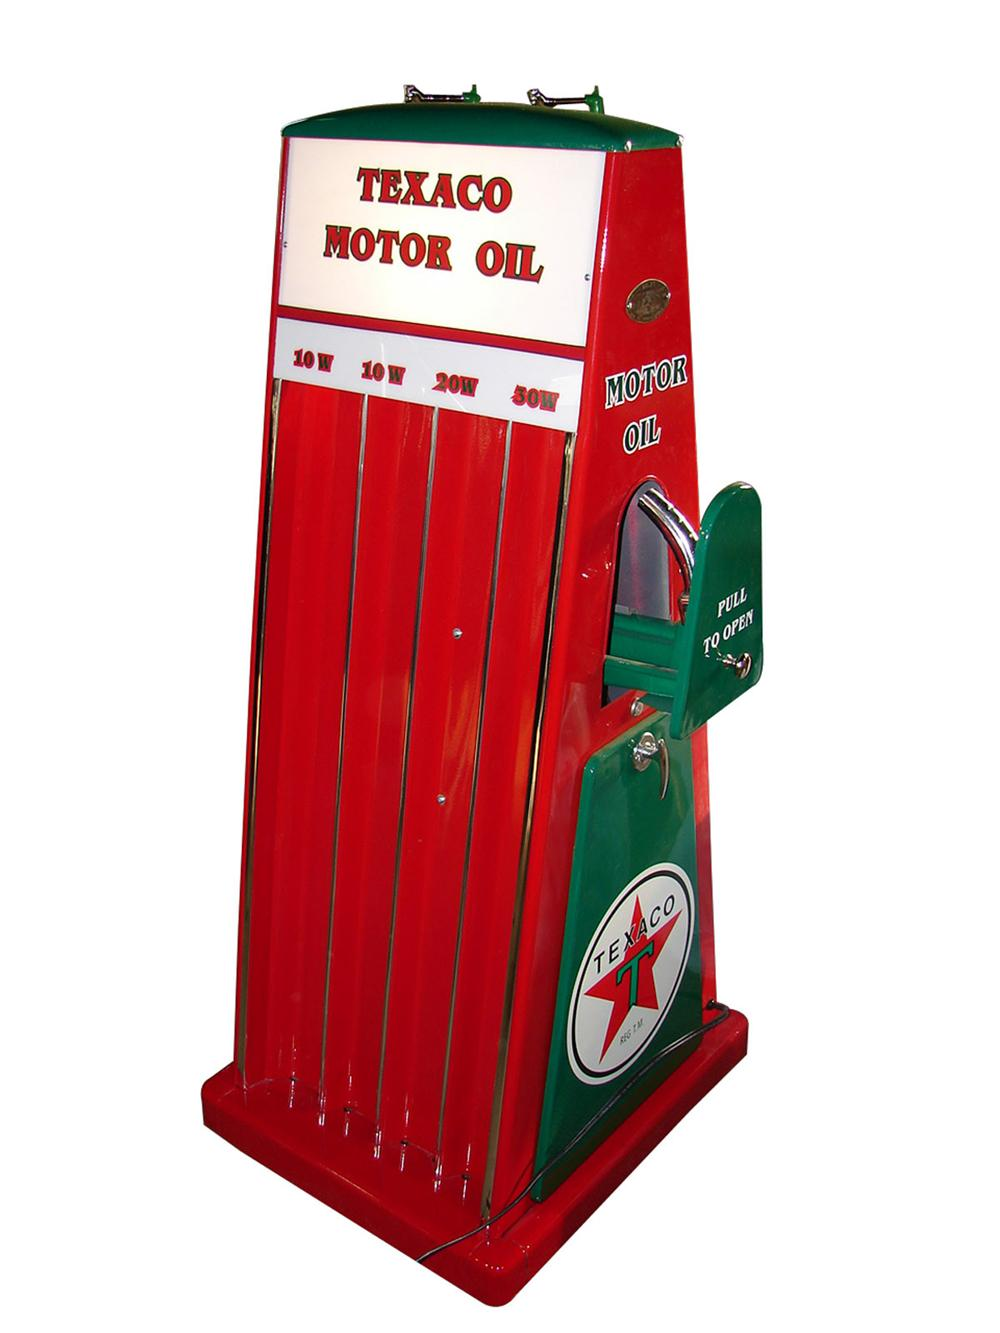 Outstanding 1940s-50s Texaco Motor Oil service station fuel island oil can display cabinet - Front 3/4 - 97750